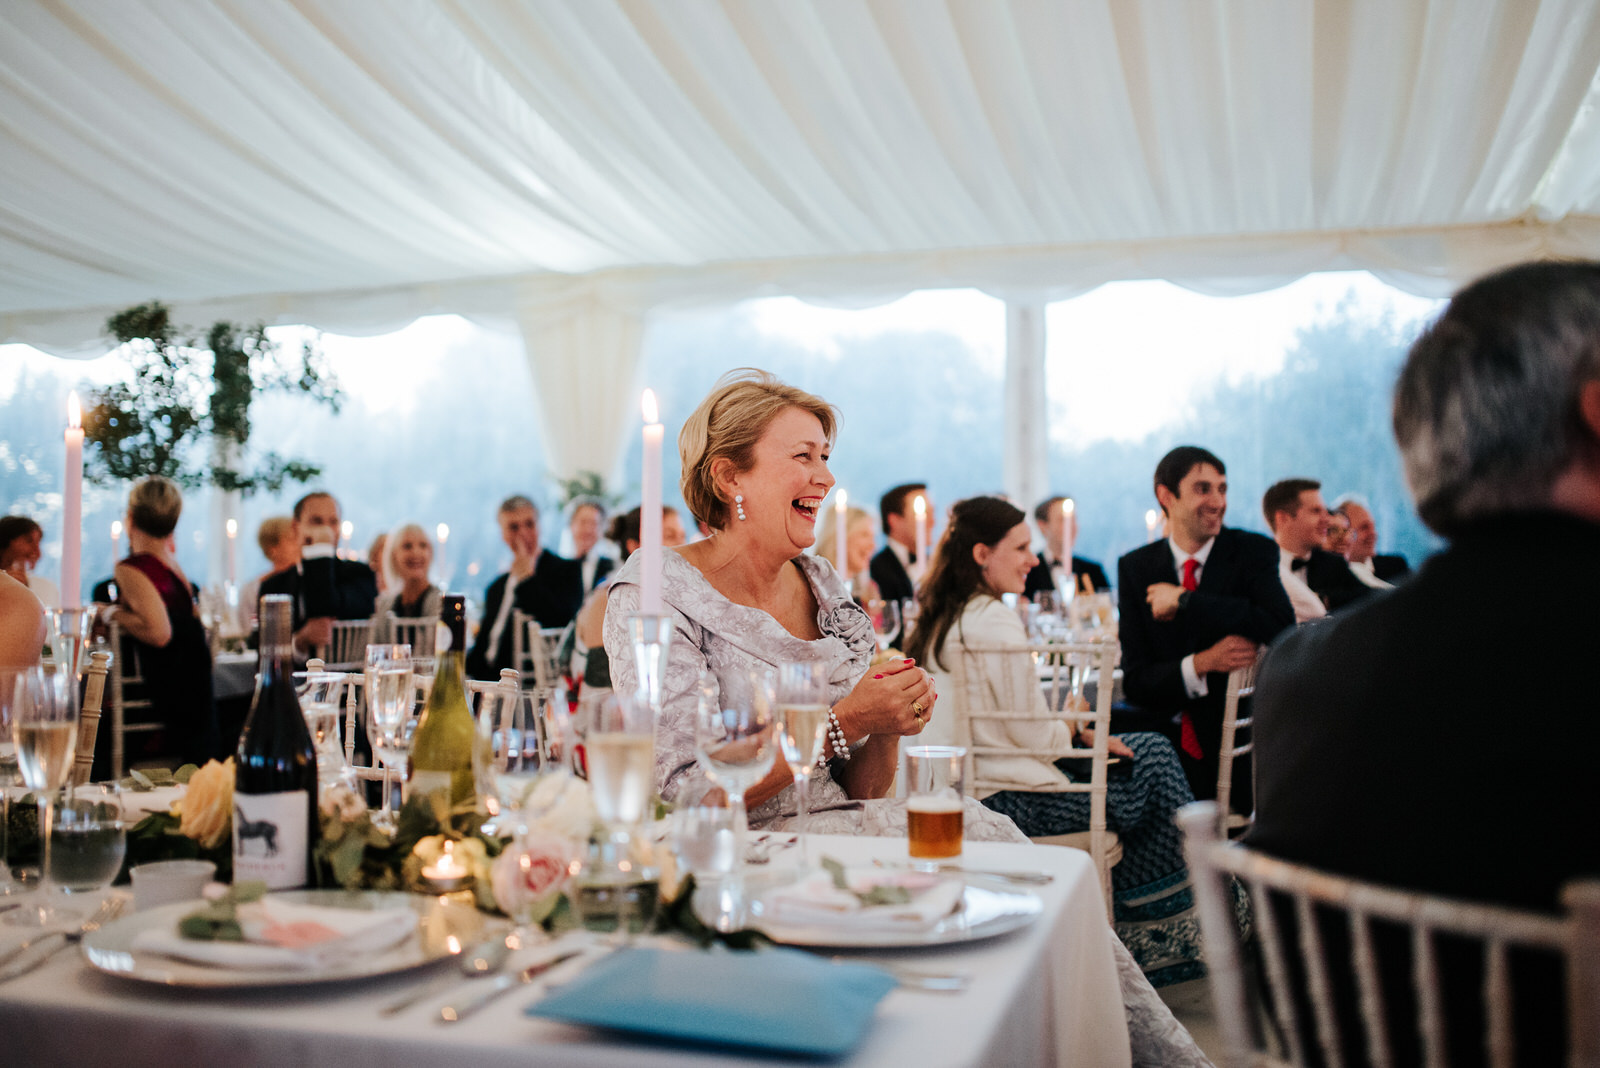 Mother of the Bride smiles during speeches inside Marquee